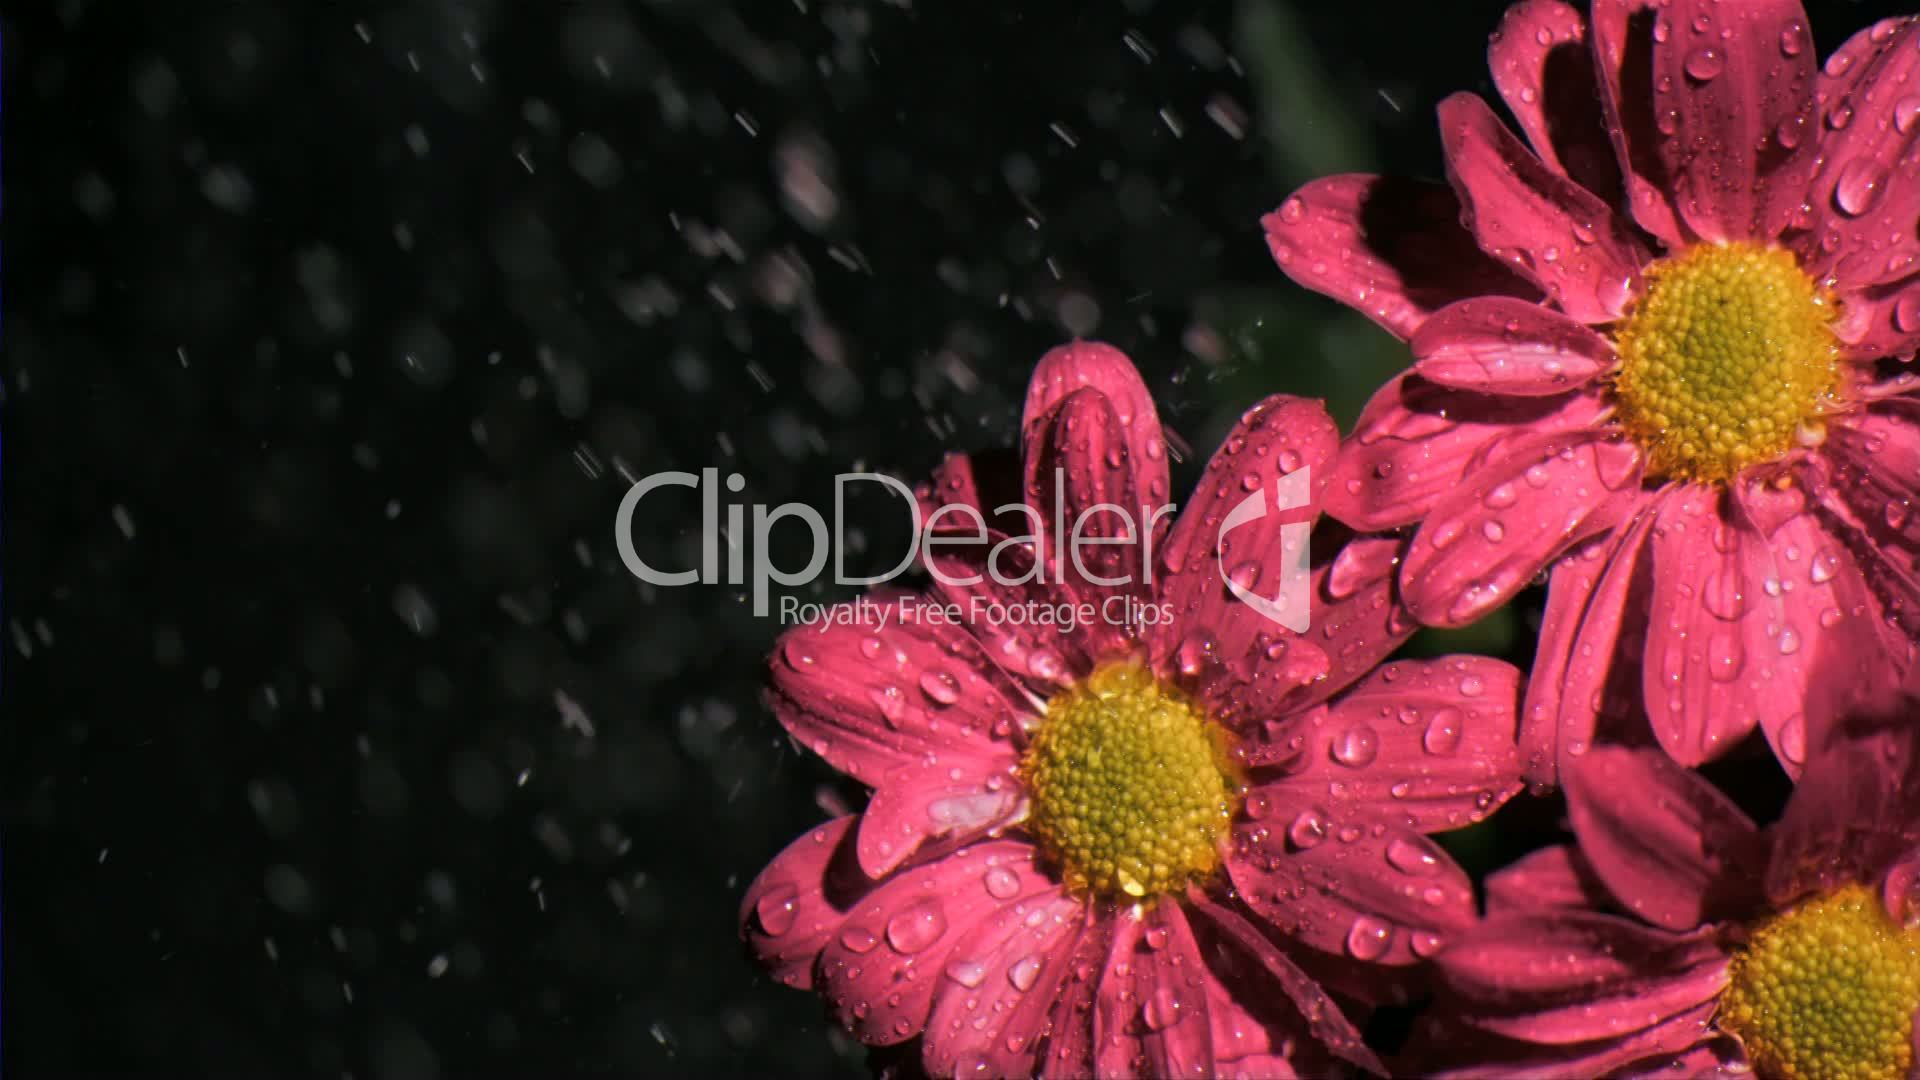 Beautiful Flowers In Super Slow Motion Being Watered Royalty Free